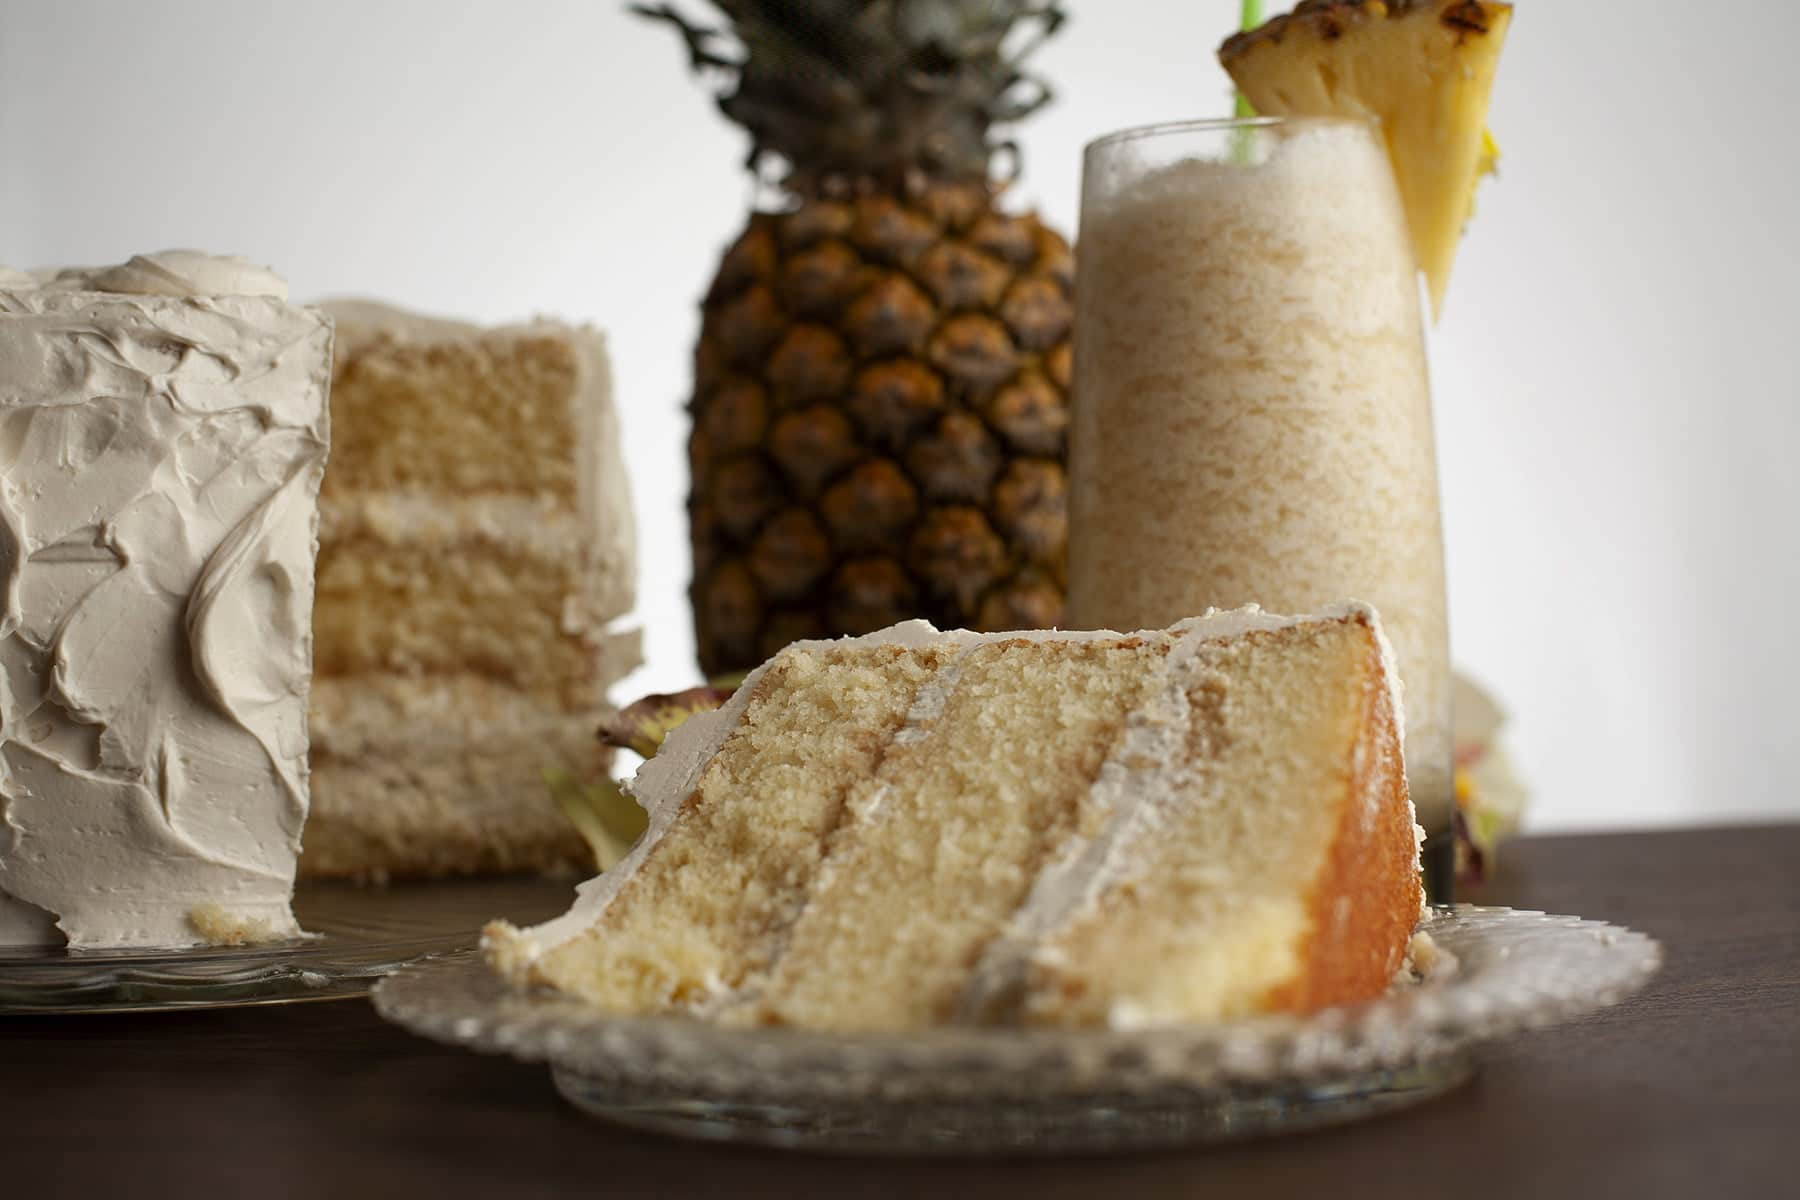 A slice of Bahama Mama cake is shown next to the cake it is cut from. 3 layers of a white cake, filled and frosted with a white frosting. A pimeapple, a yellow cymbidium orchid, and a tropical cocktail - a Bahama Mama - are shown next to and behind the cake.